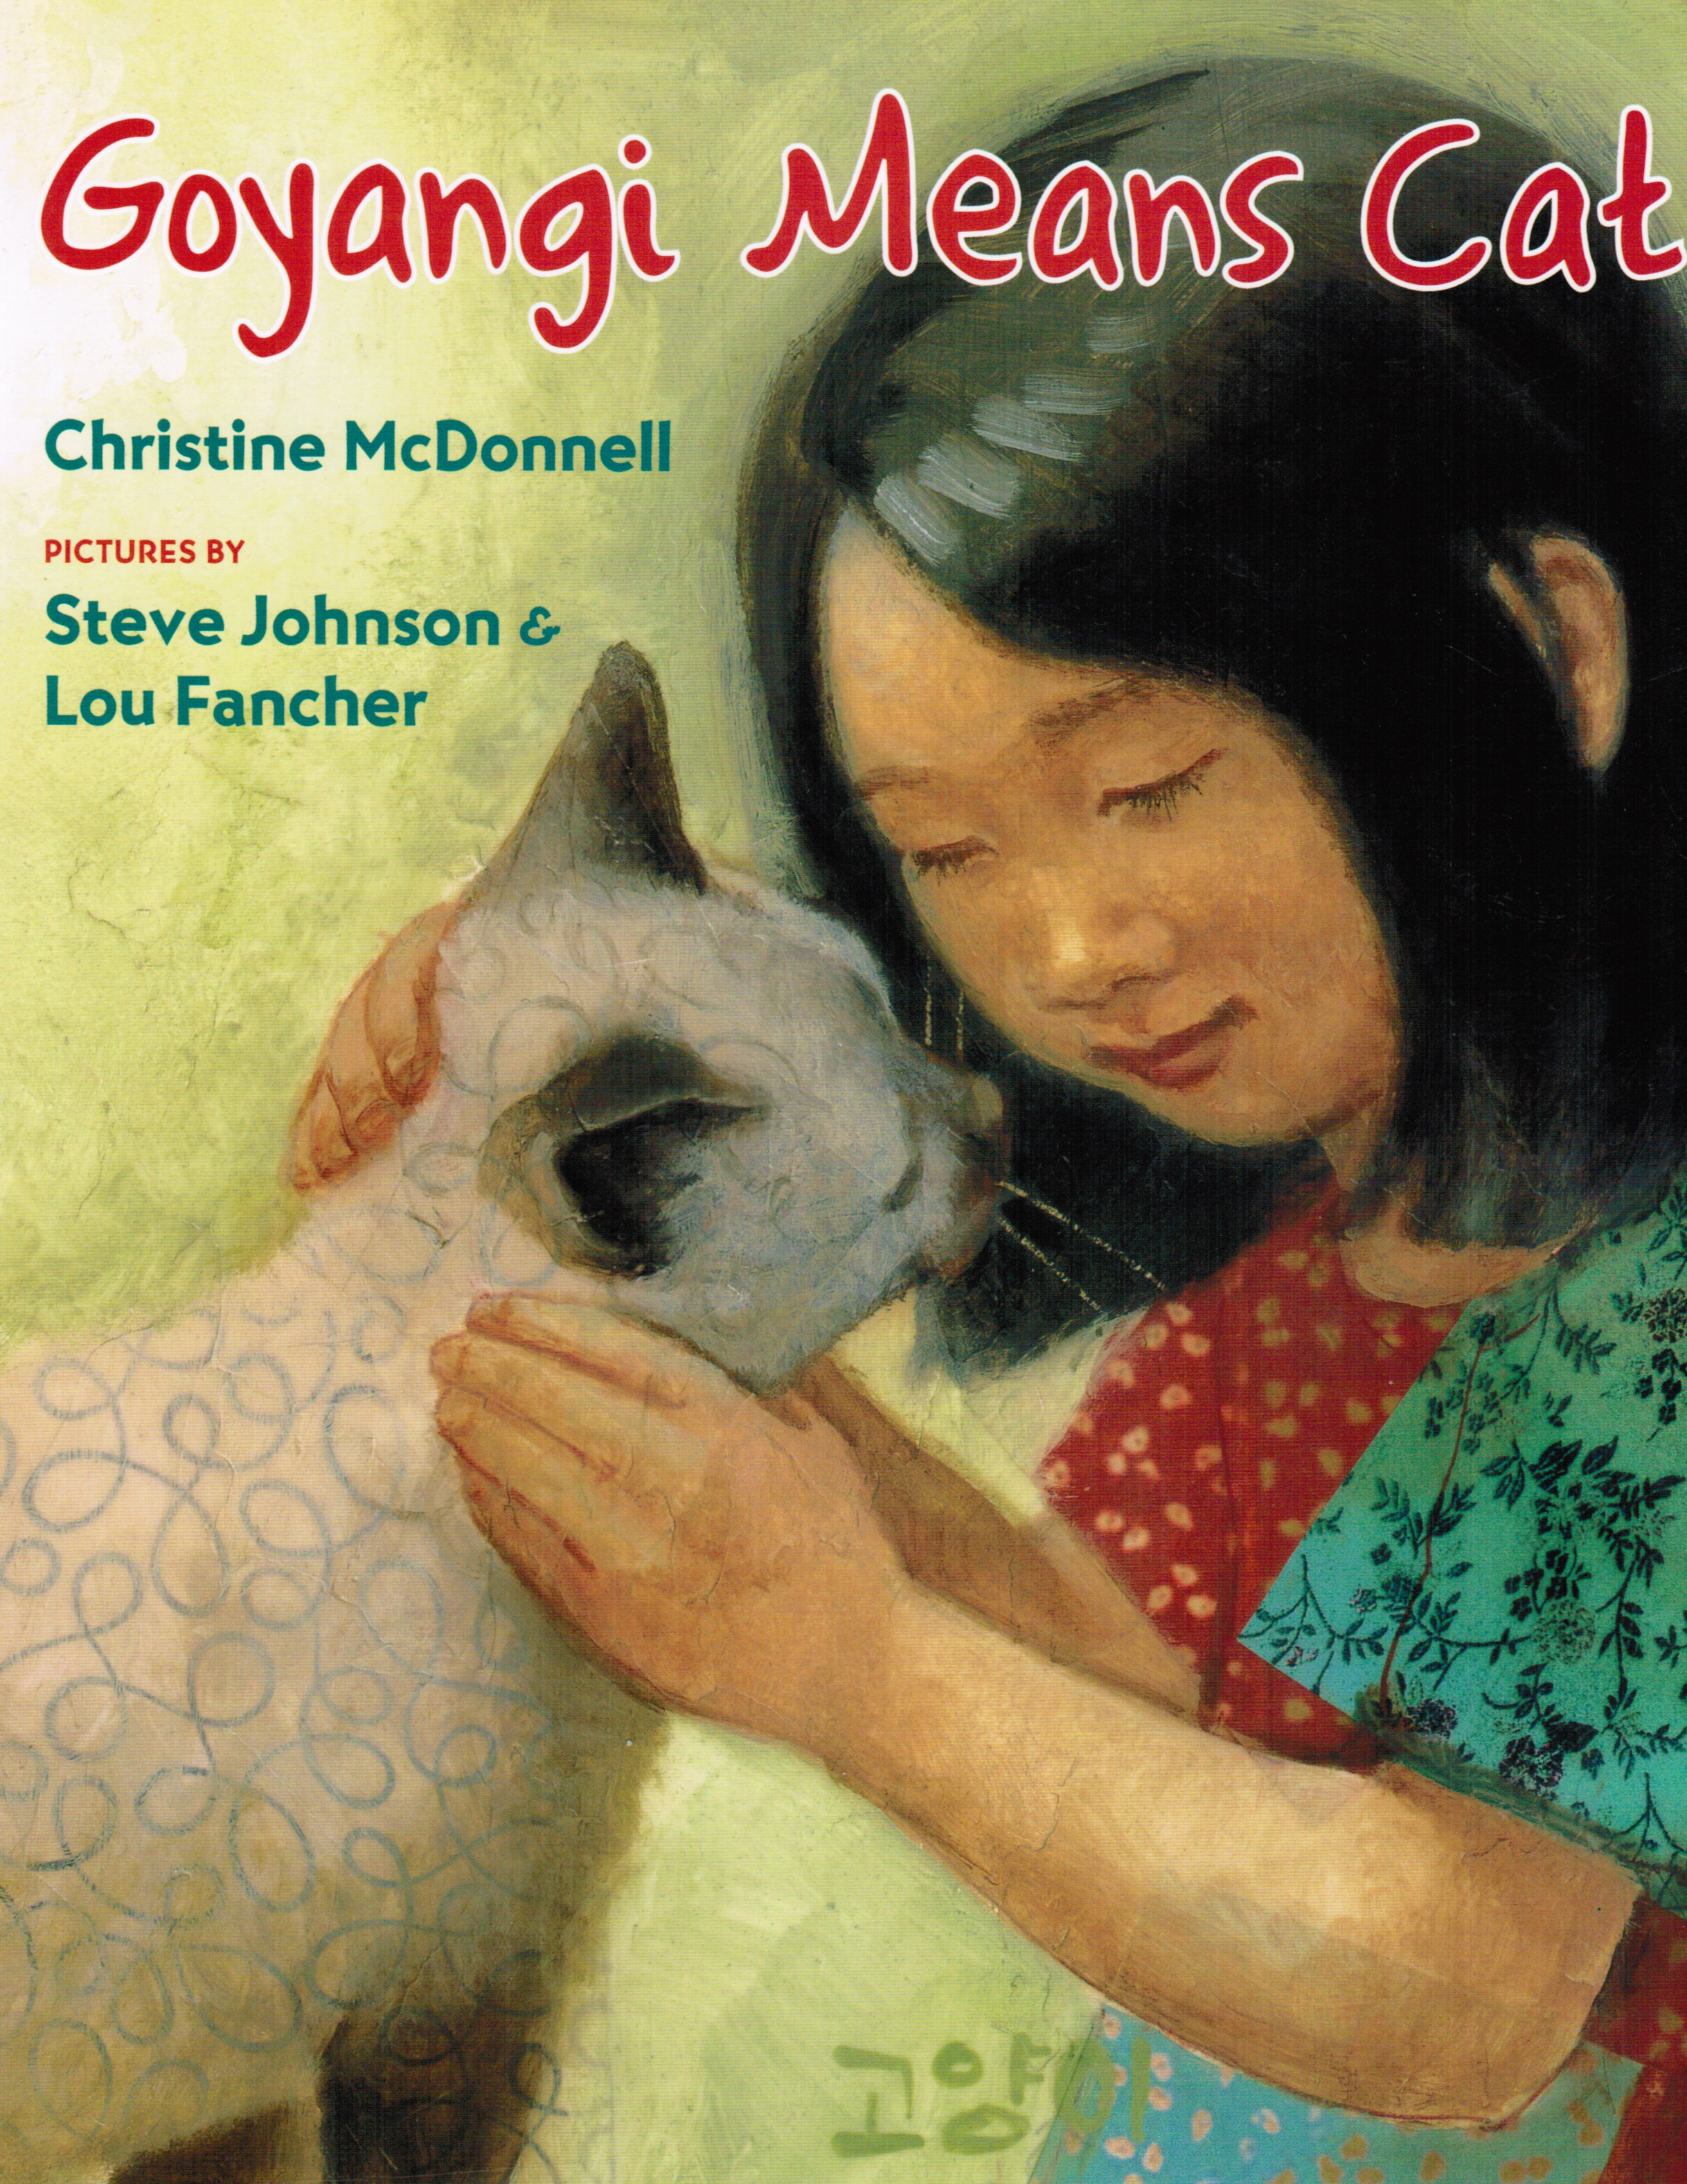 Image for Christine Mcdonnell Goyangi Means Cat